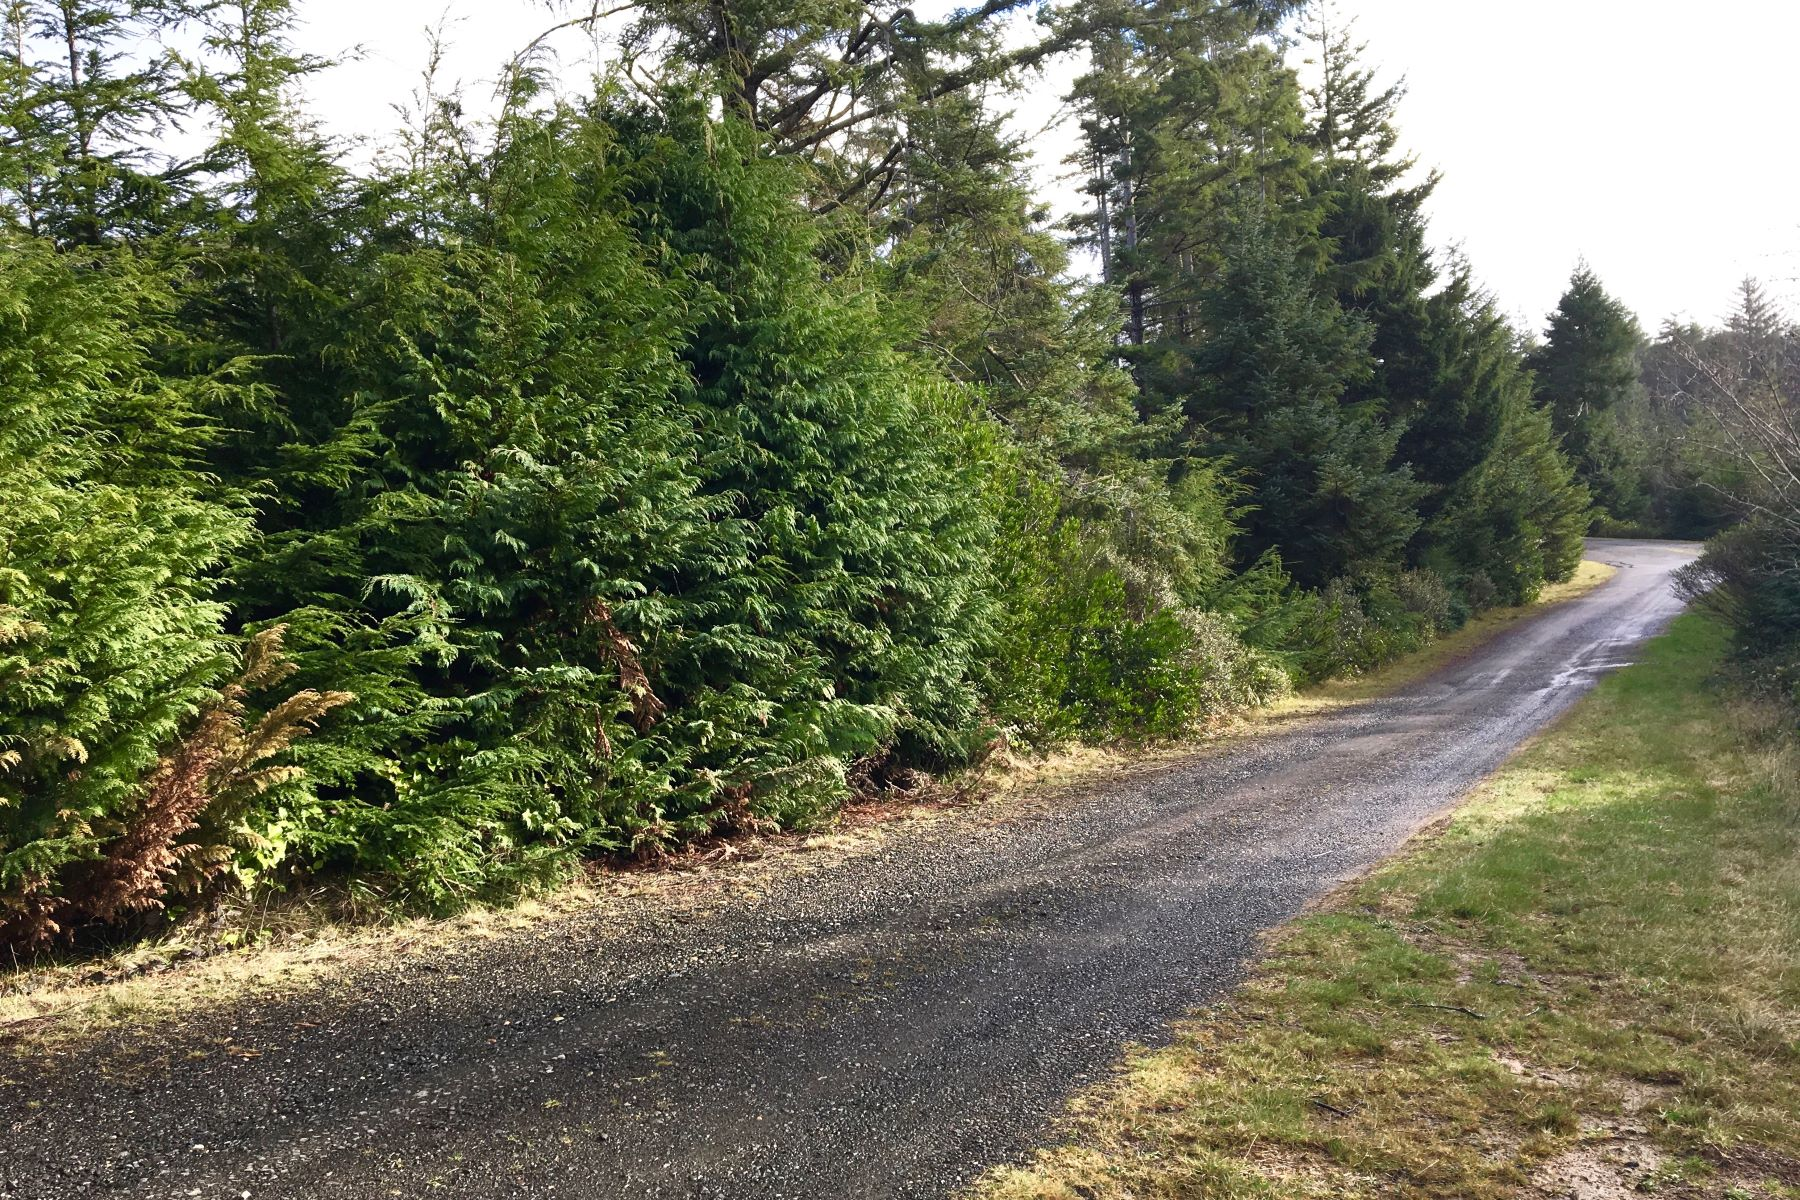 Land for Sale at Tranquil Forest Lots 0 Sacchi Ln, Bandon, Oregon, 97411 United States